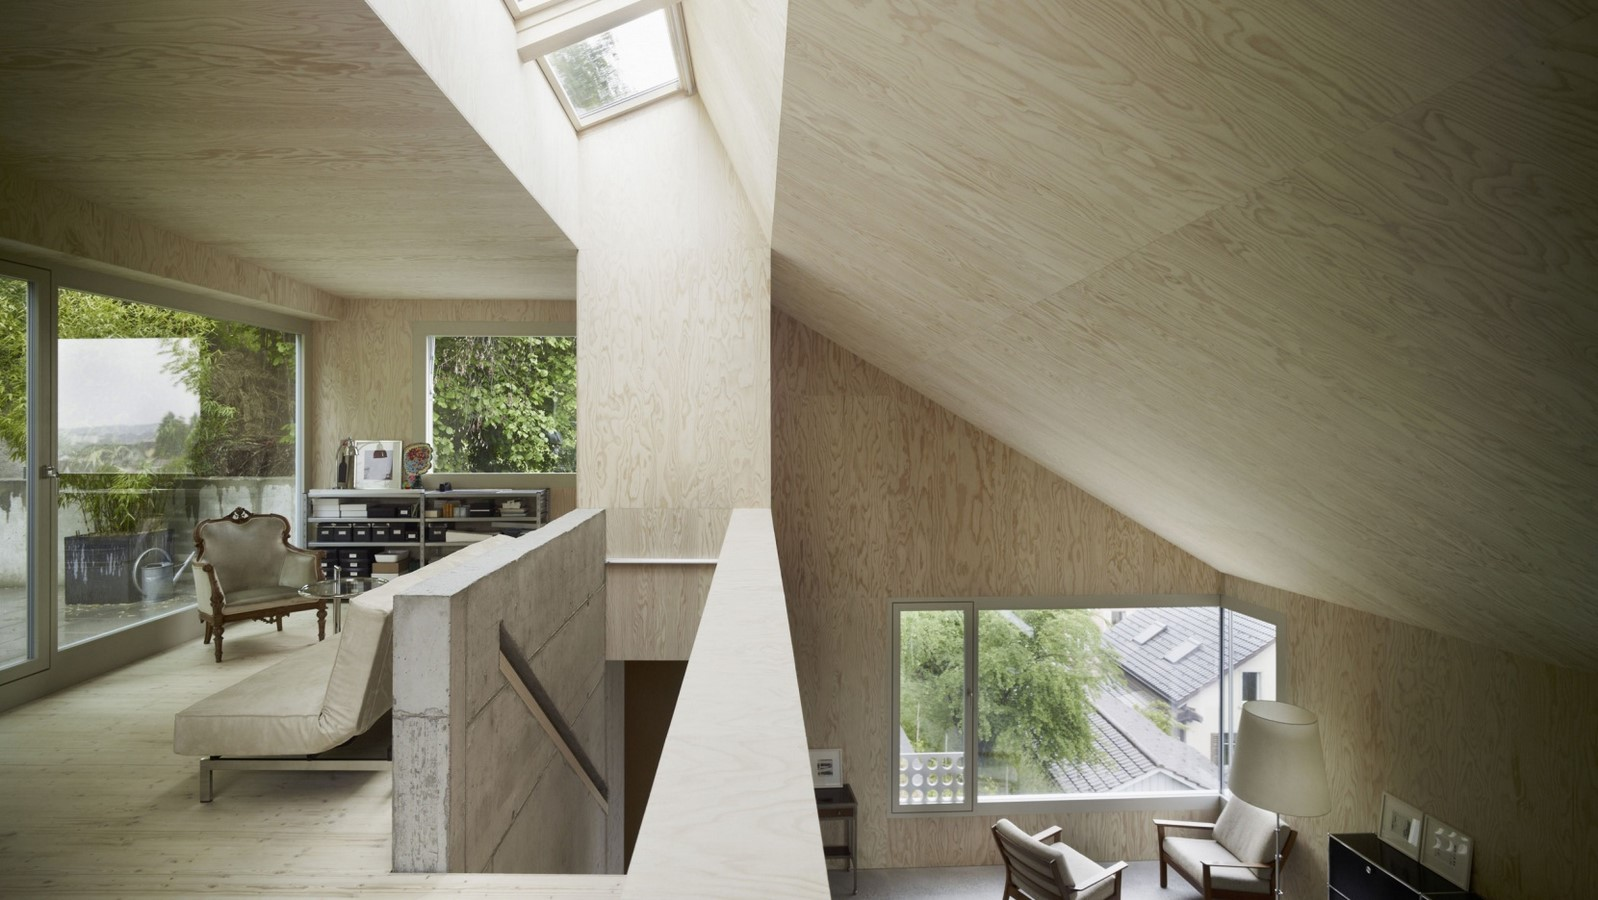 Single Family House in Zurich Oberland, 2011 - Sheet3